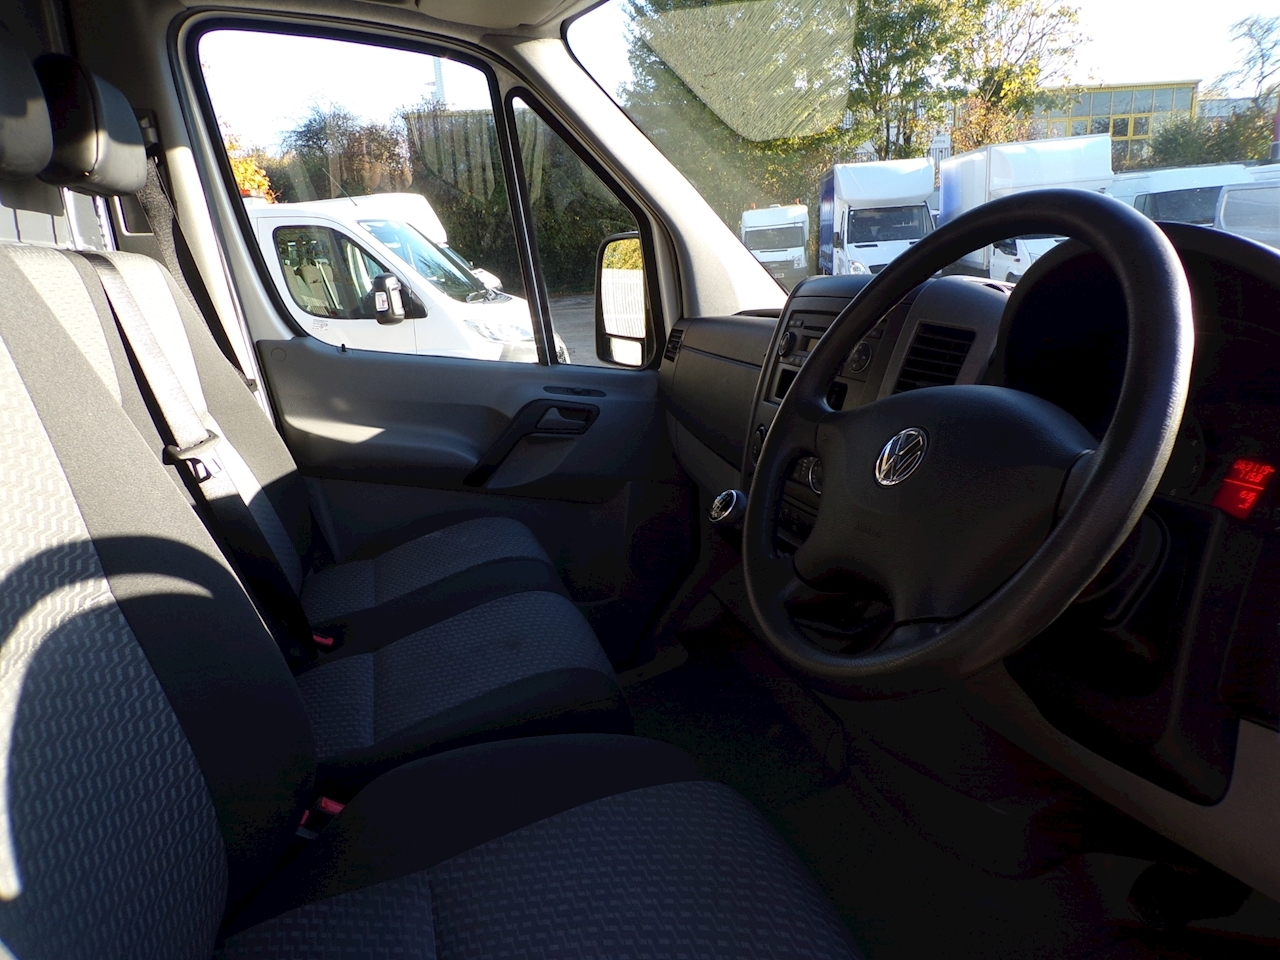 Volkswagen Crafter Cr35 Tdi H/R MWB A/C